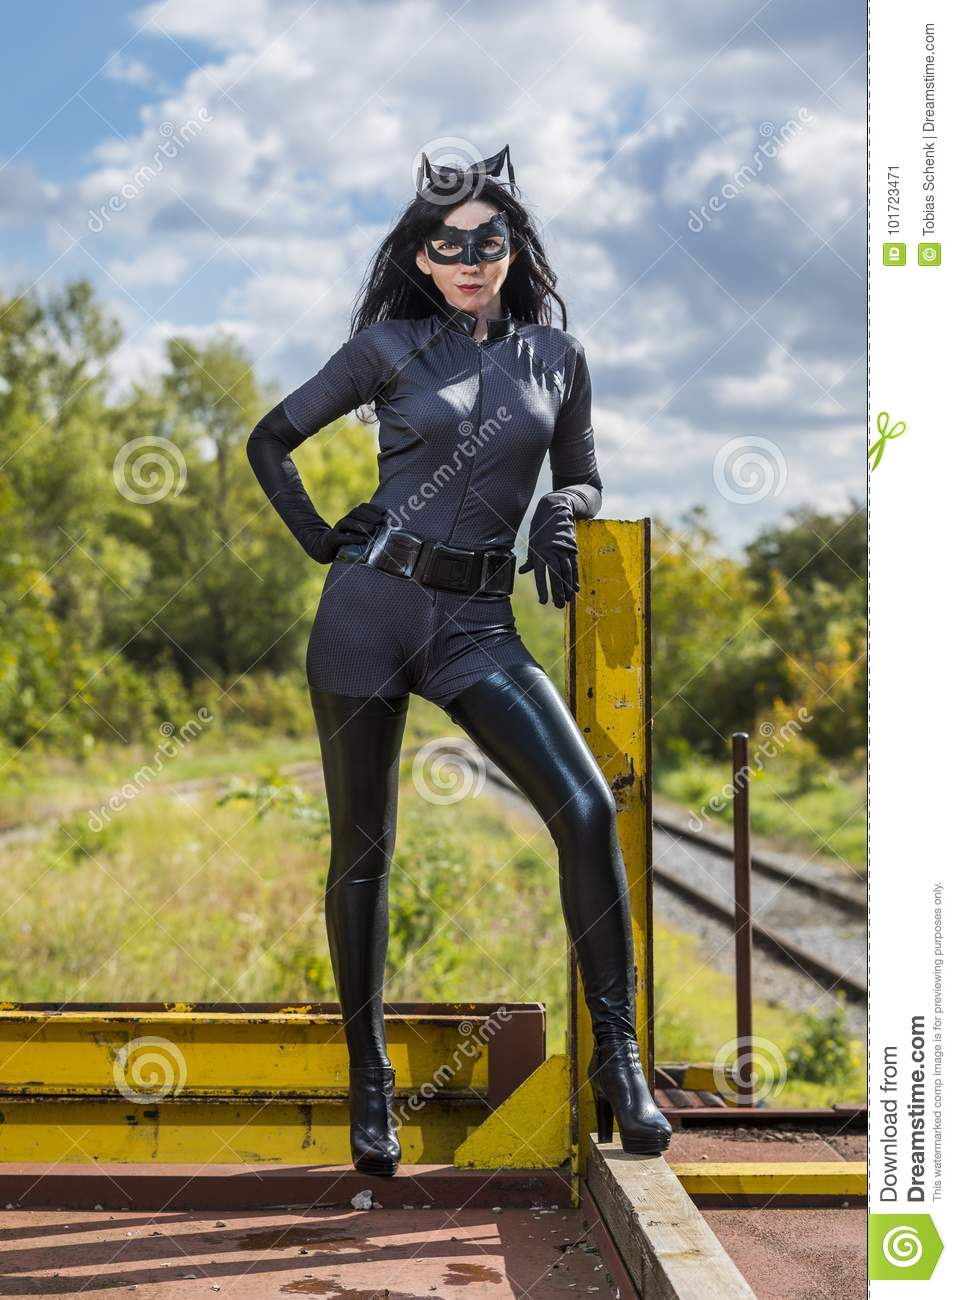 Download Beautiful Woman Wearing Catwoman Costume Stock Image - Image of industrial transportation 101723471 & Beautiful Woman Wearing Catwoman Costume Stock Image - Image of ...